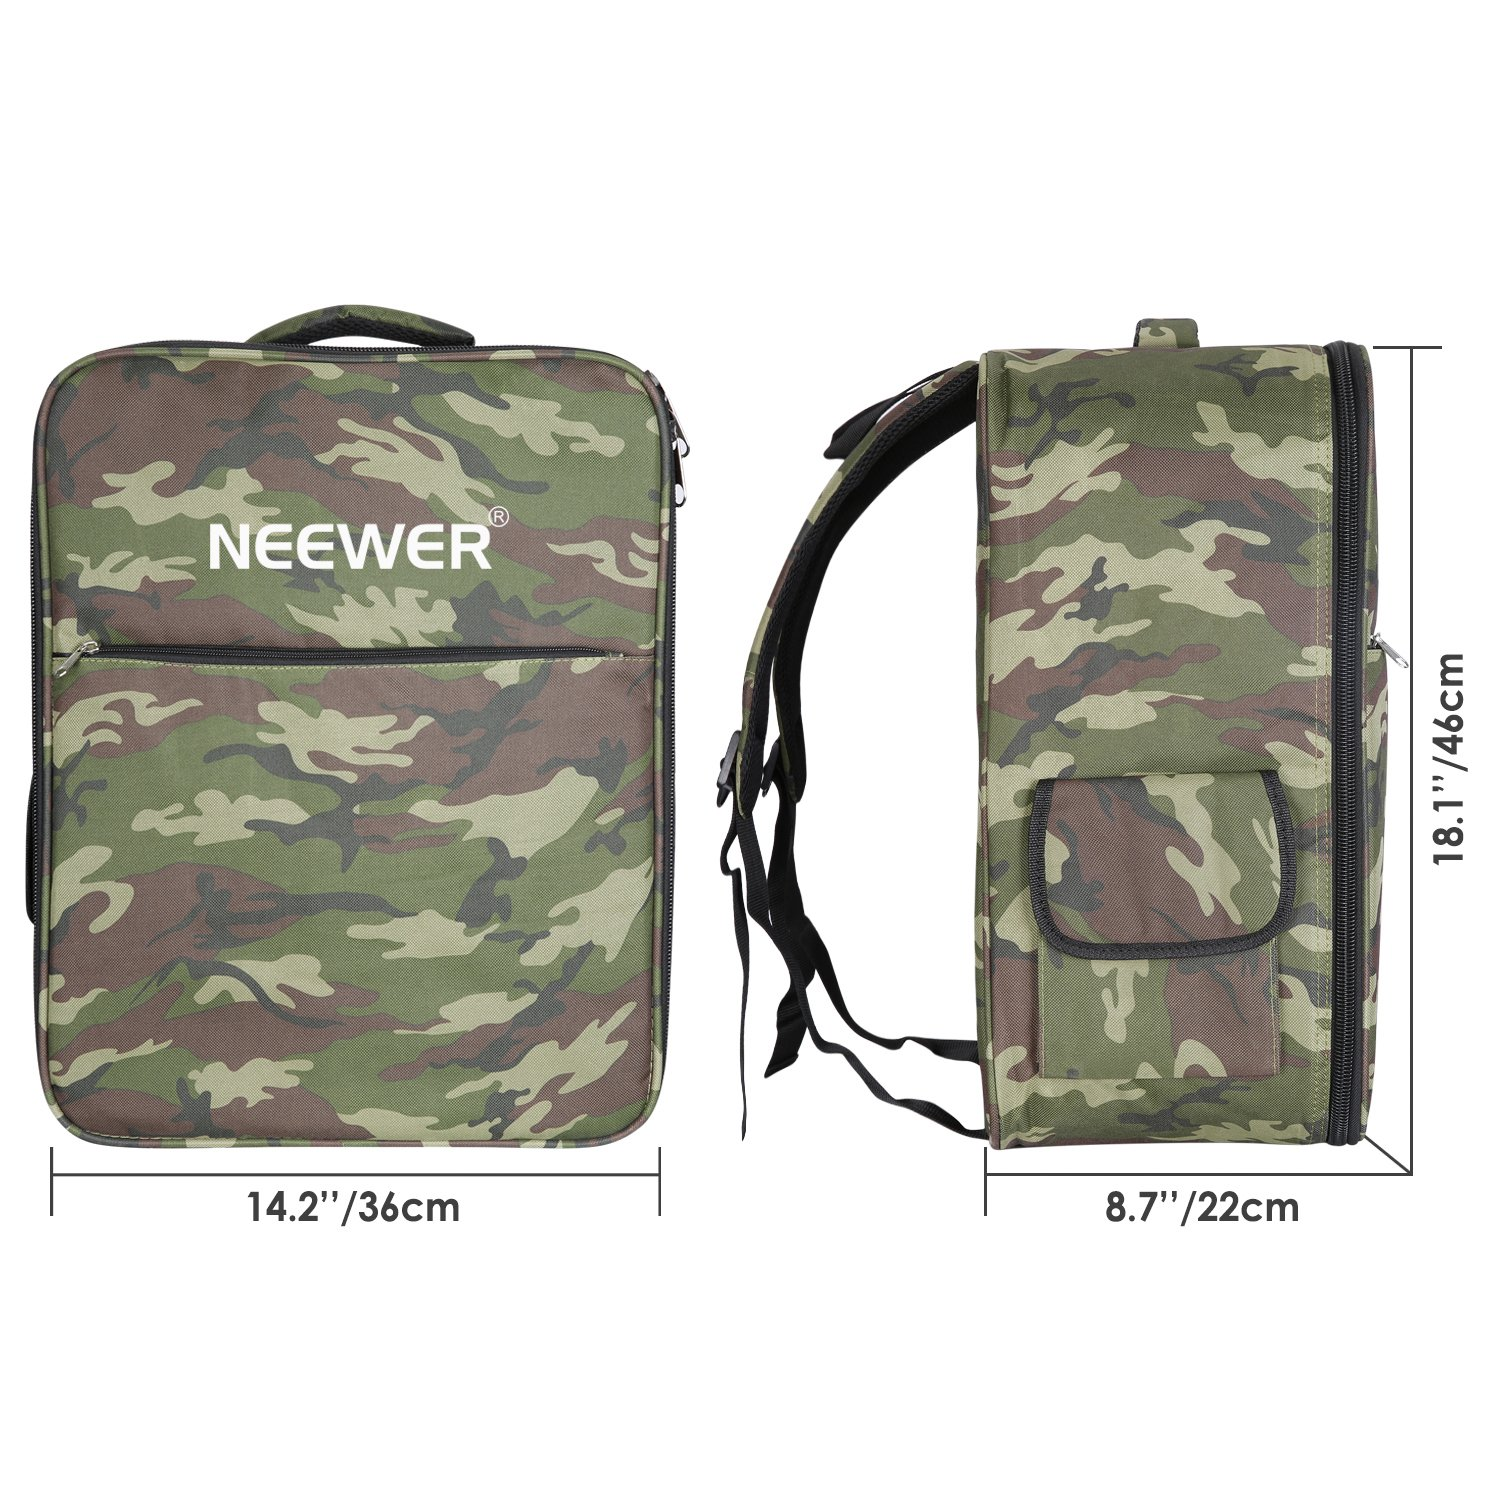 Neewer Multi-Function Waterproof Backpack Bag Case for DJI Phantom 1 FC40 2 2 Vision 2 Vision+ 3, DJI 3 Professional, Advanced, Standard, 4K Cameras and Accessories(Camouflage) by Neewer (Image #3)